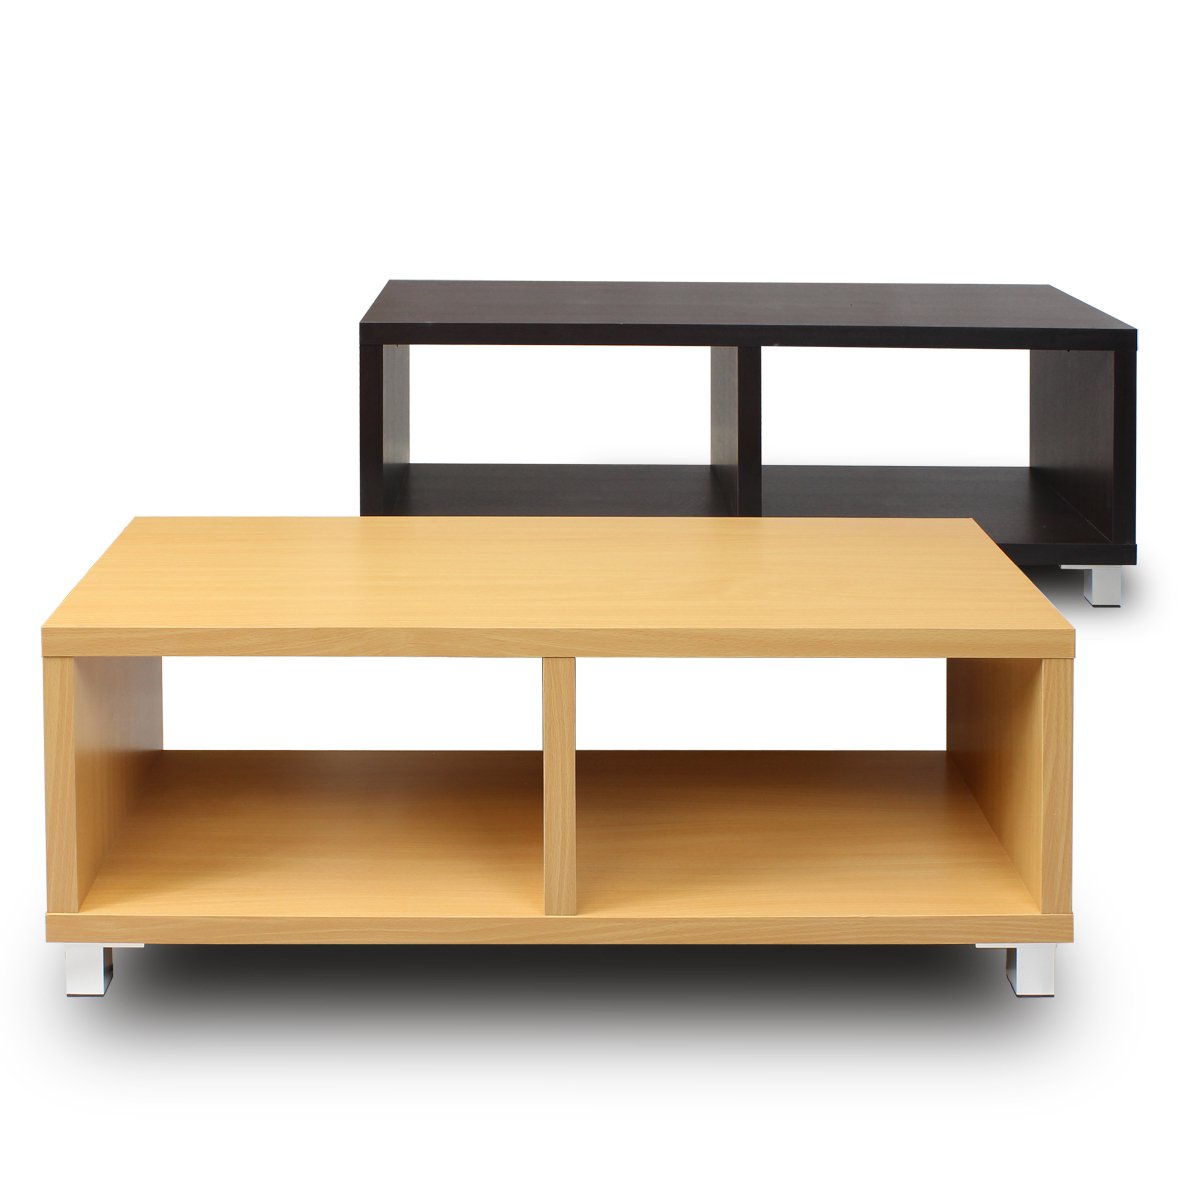 Shop Furinno Nihon Dual Functiona Contemporary Tv Stand Coffee Table Throughout Well Liked Tv Stand Coffee Table Sets (View 19 of 20)